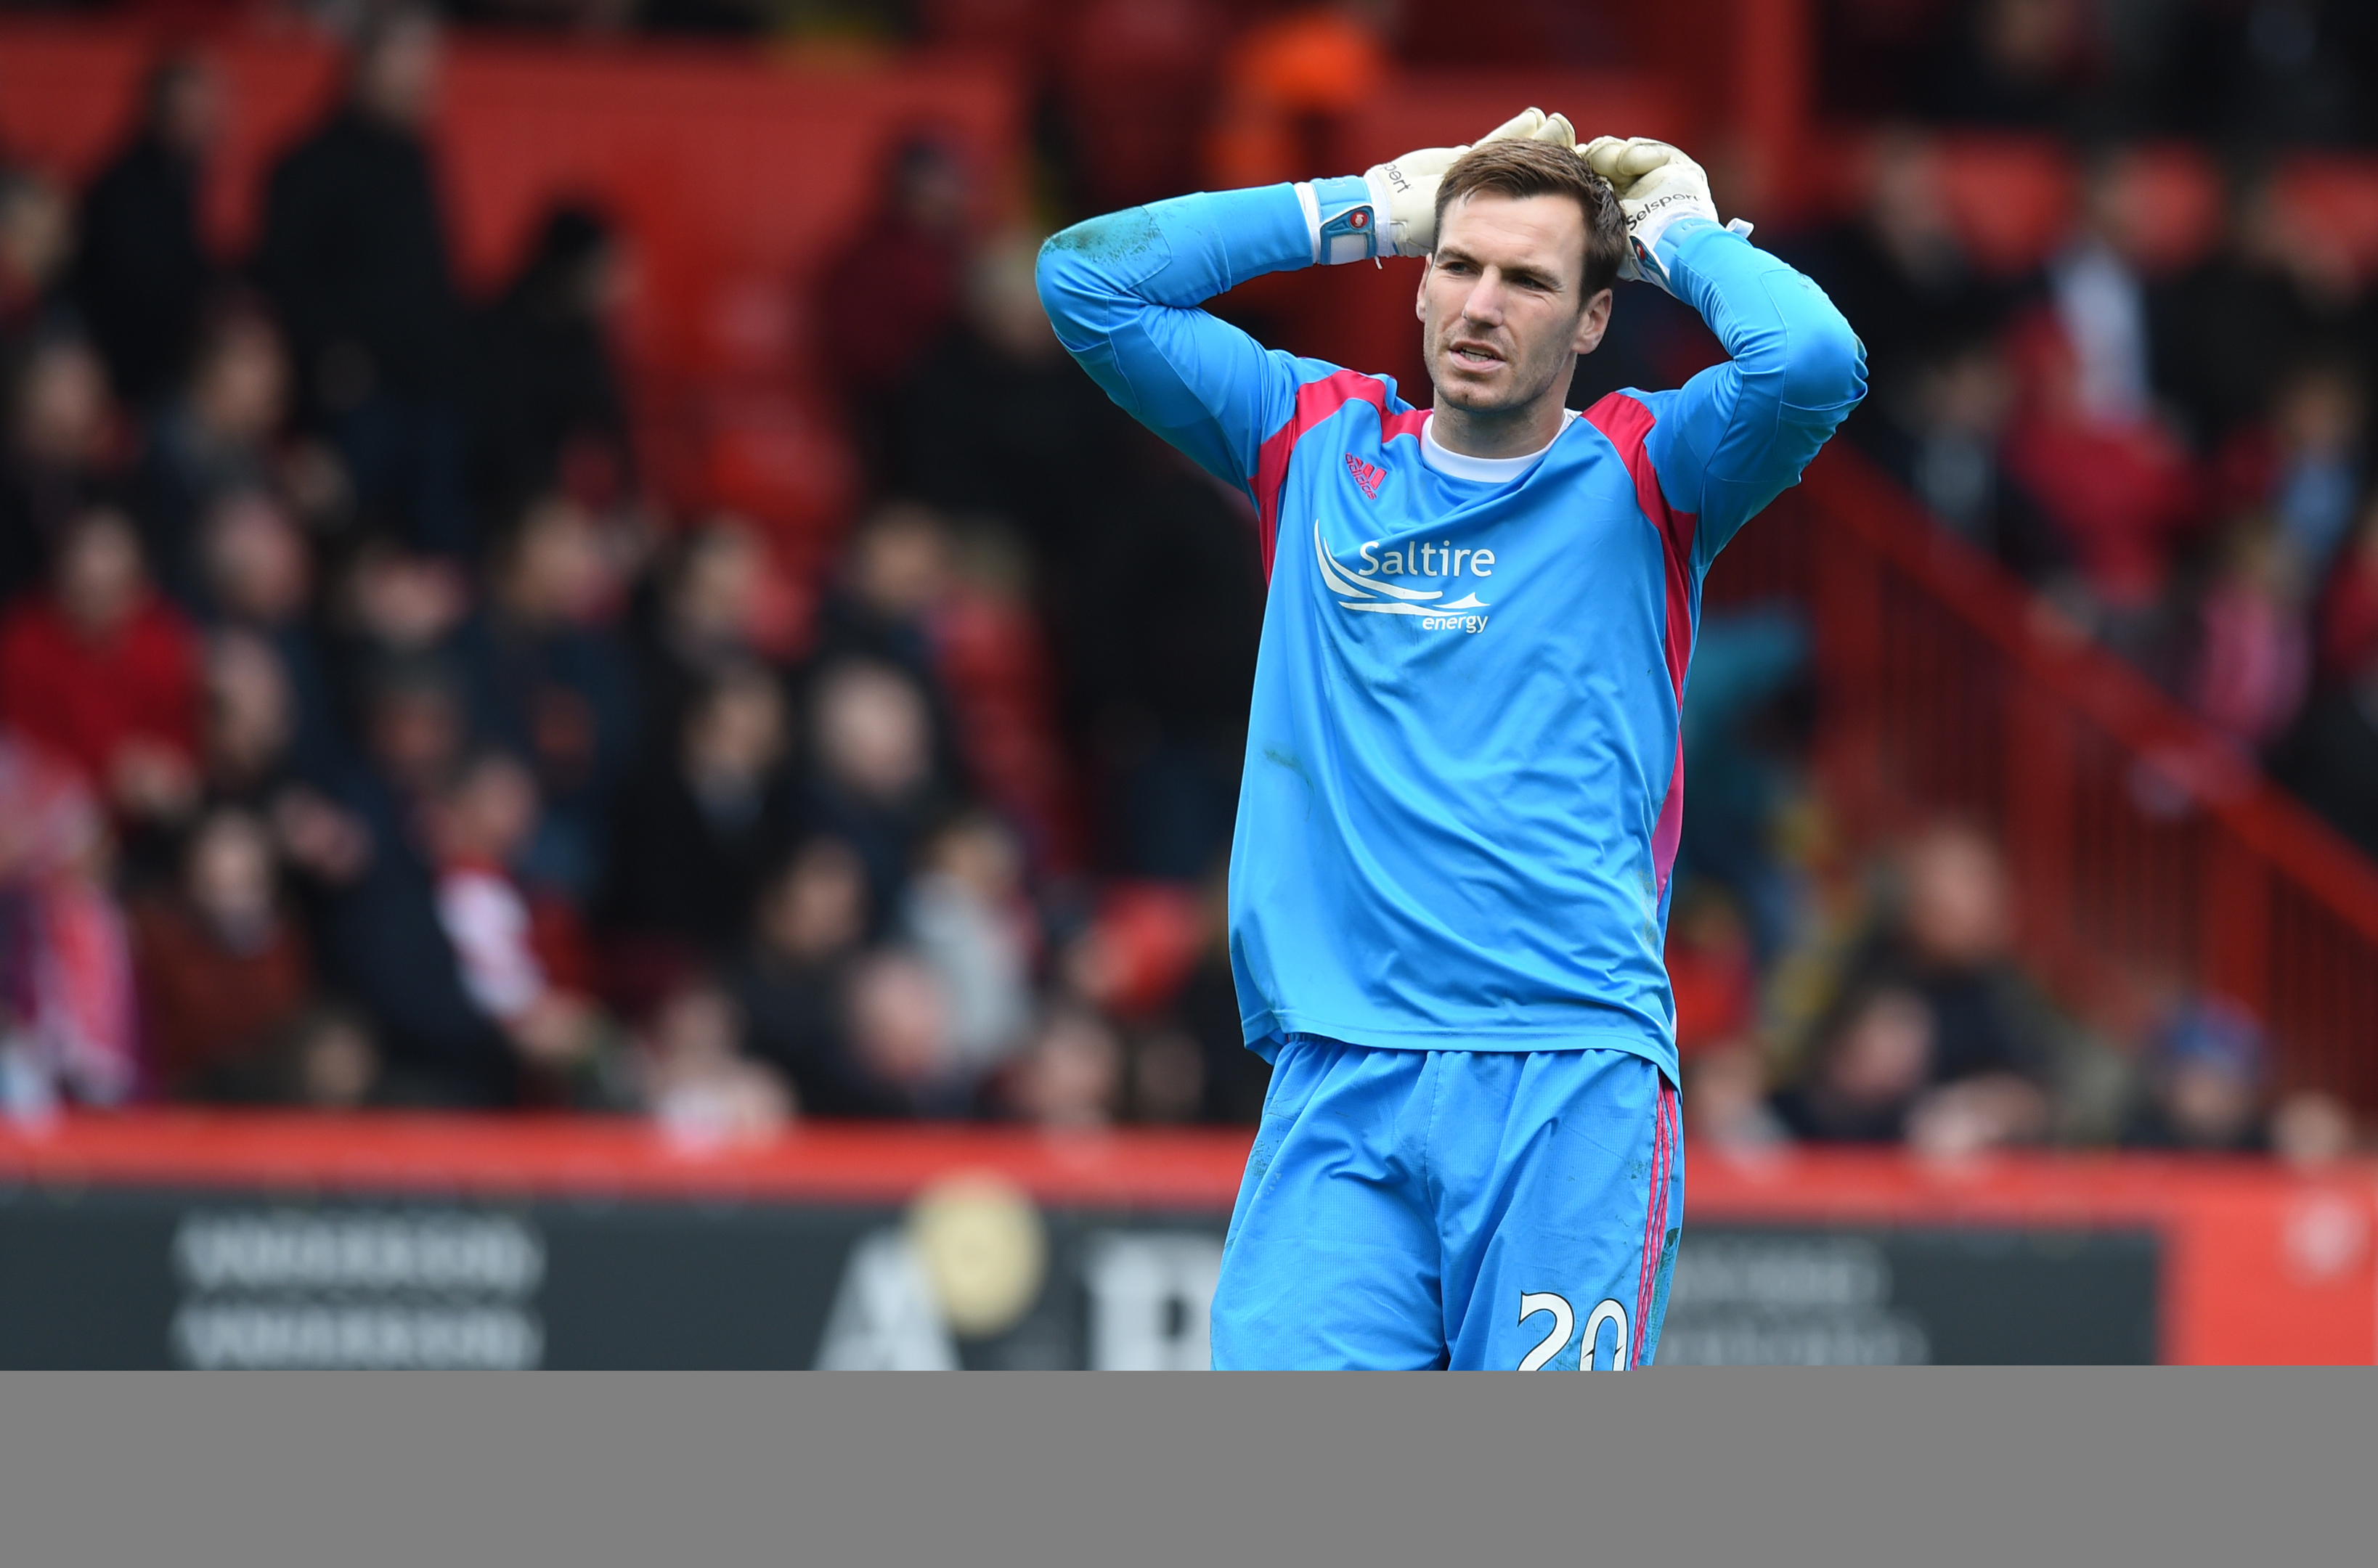 Despite a series of fine saves Aberdeen keeper Scott Brown can't help his side to a win.